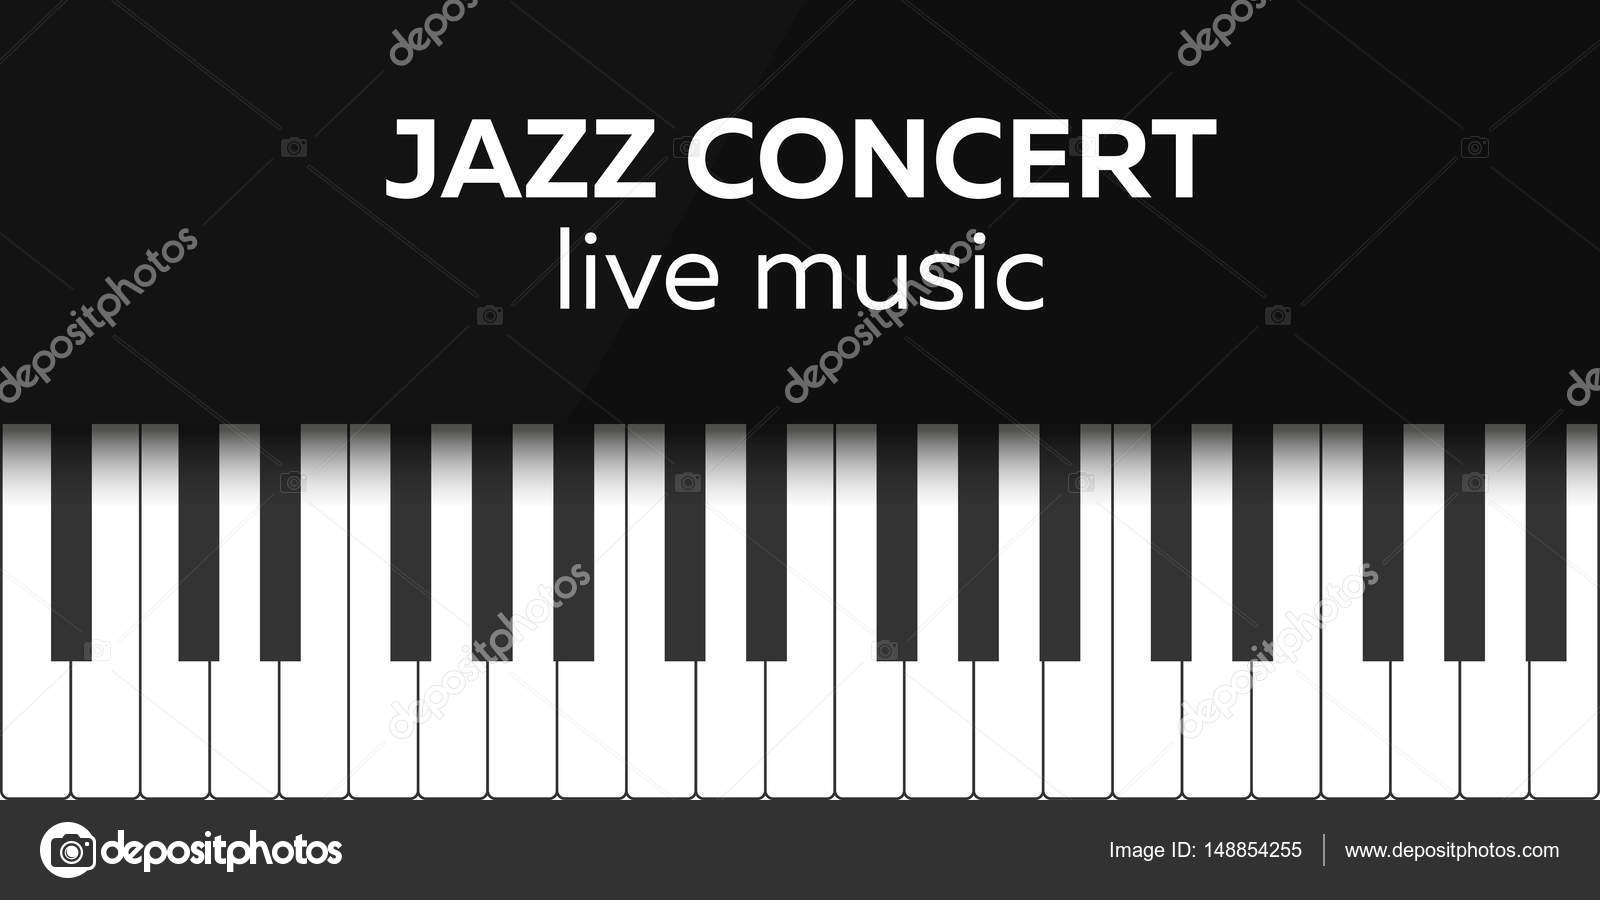 Jazz Concert Poster Design Live Music Piano Keys Vector Illustration By Leo